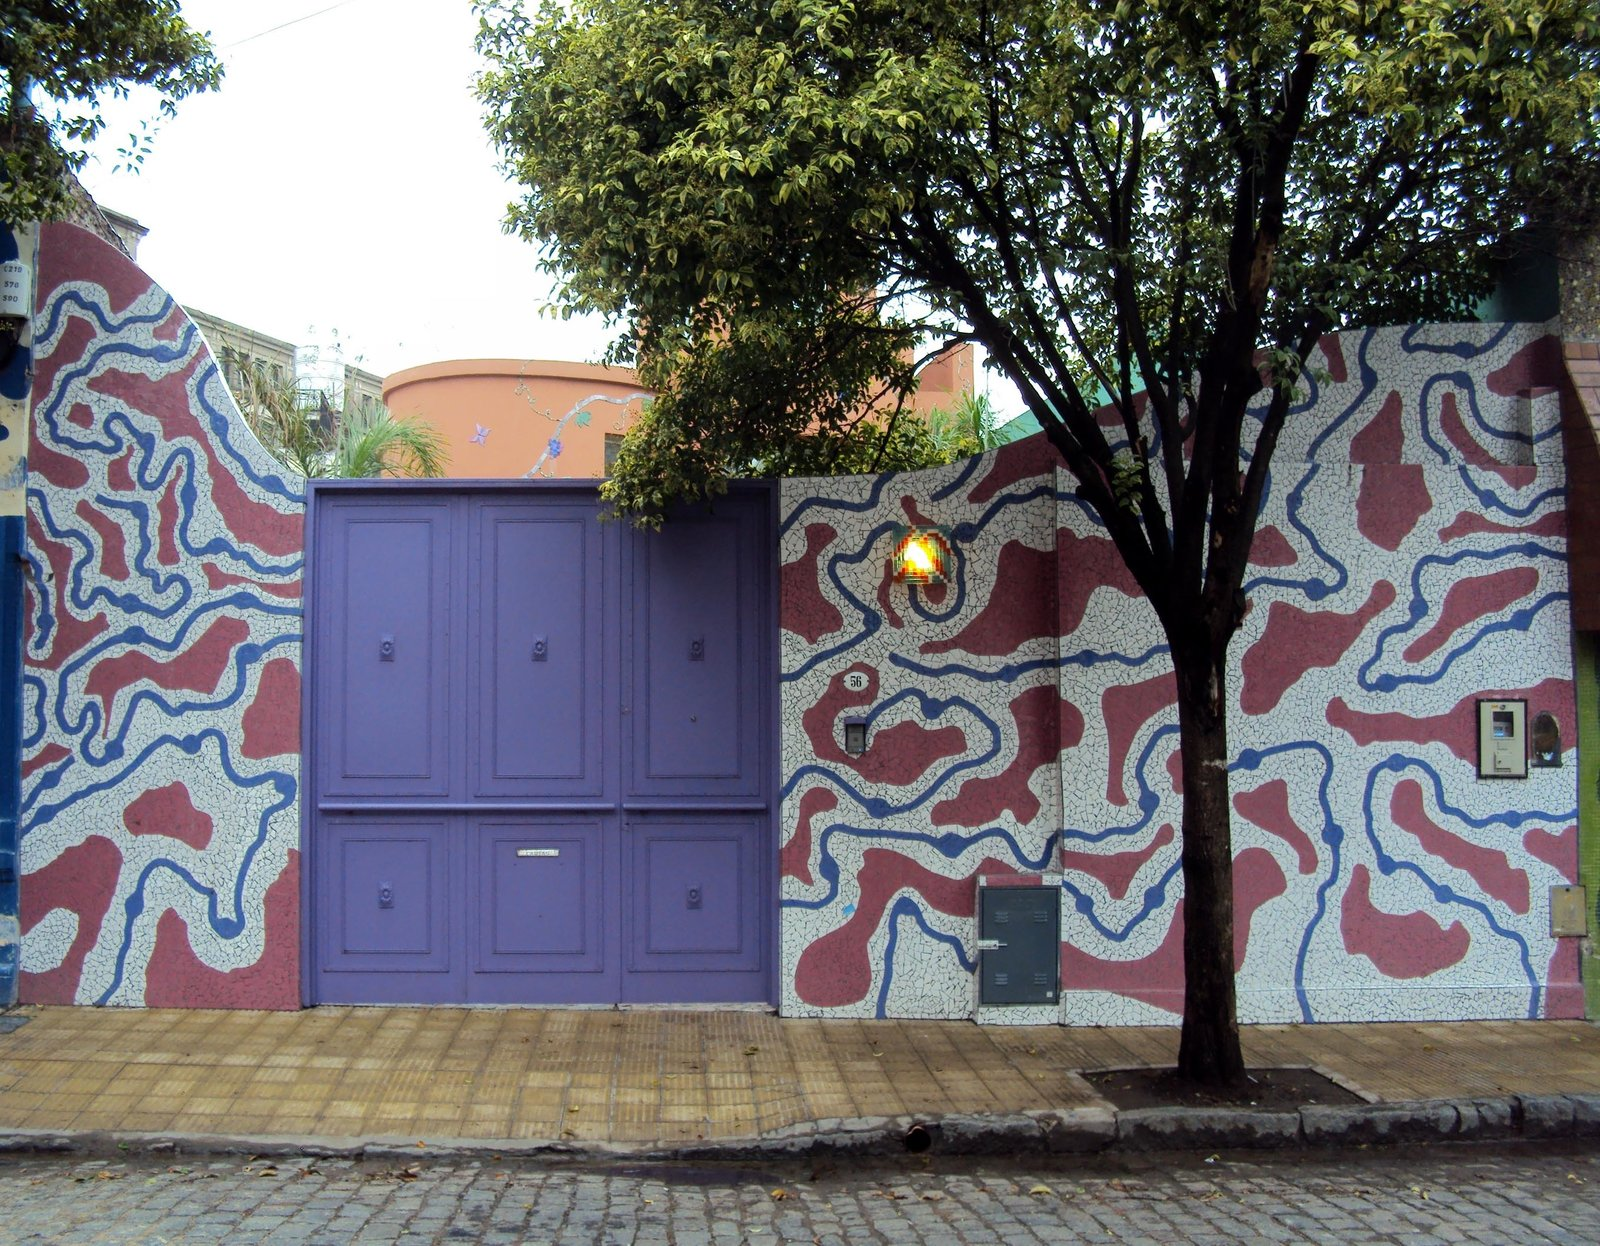 Barracas has been recognized as Buenos Aires District of Design due to its concentration of creatives. Tagged: Exterior.  color by Molly E. Osler, Interior Design from Discover One of the Most Colorful Streets in Buenos Aires